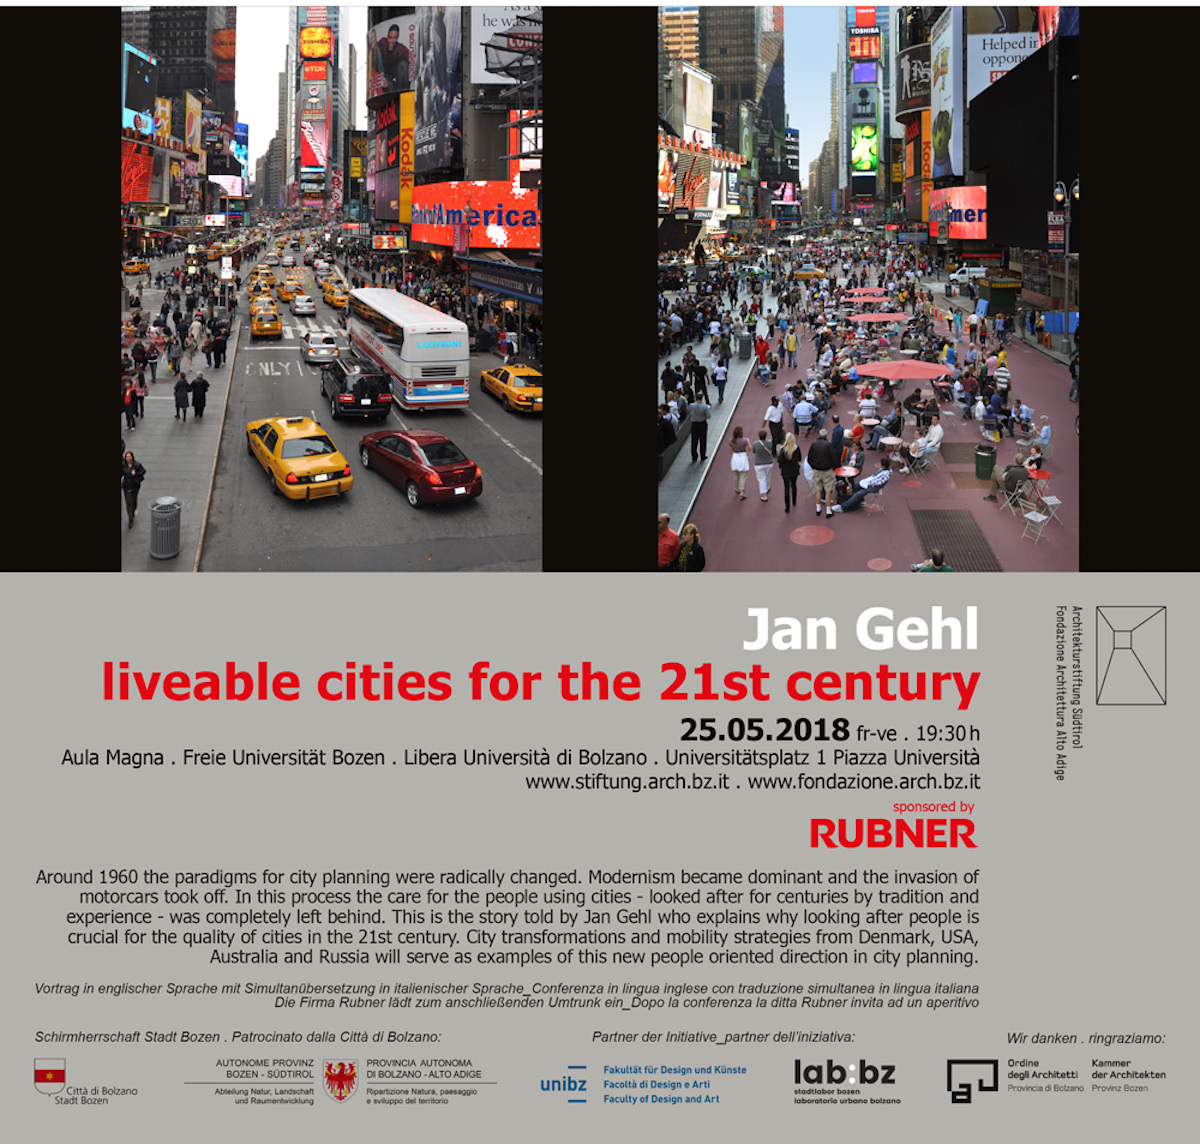 Liveable cities for the 21st century